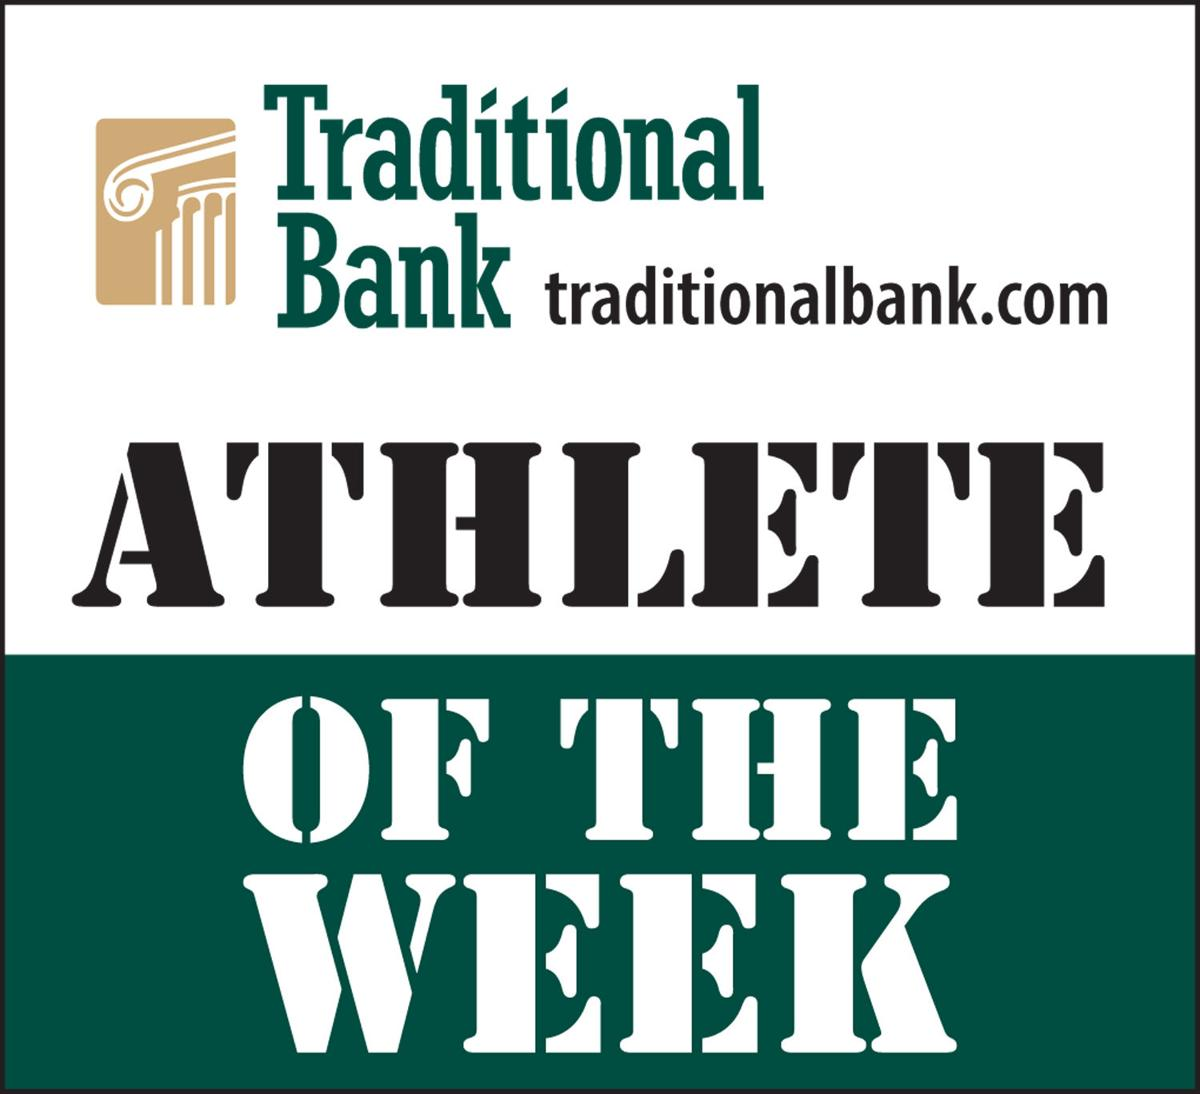 New Athlete of the Week logo